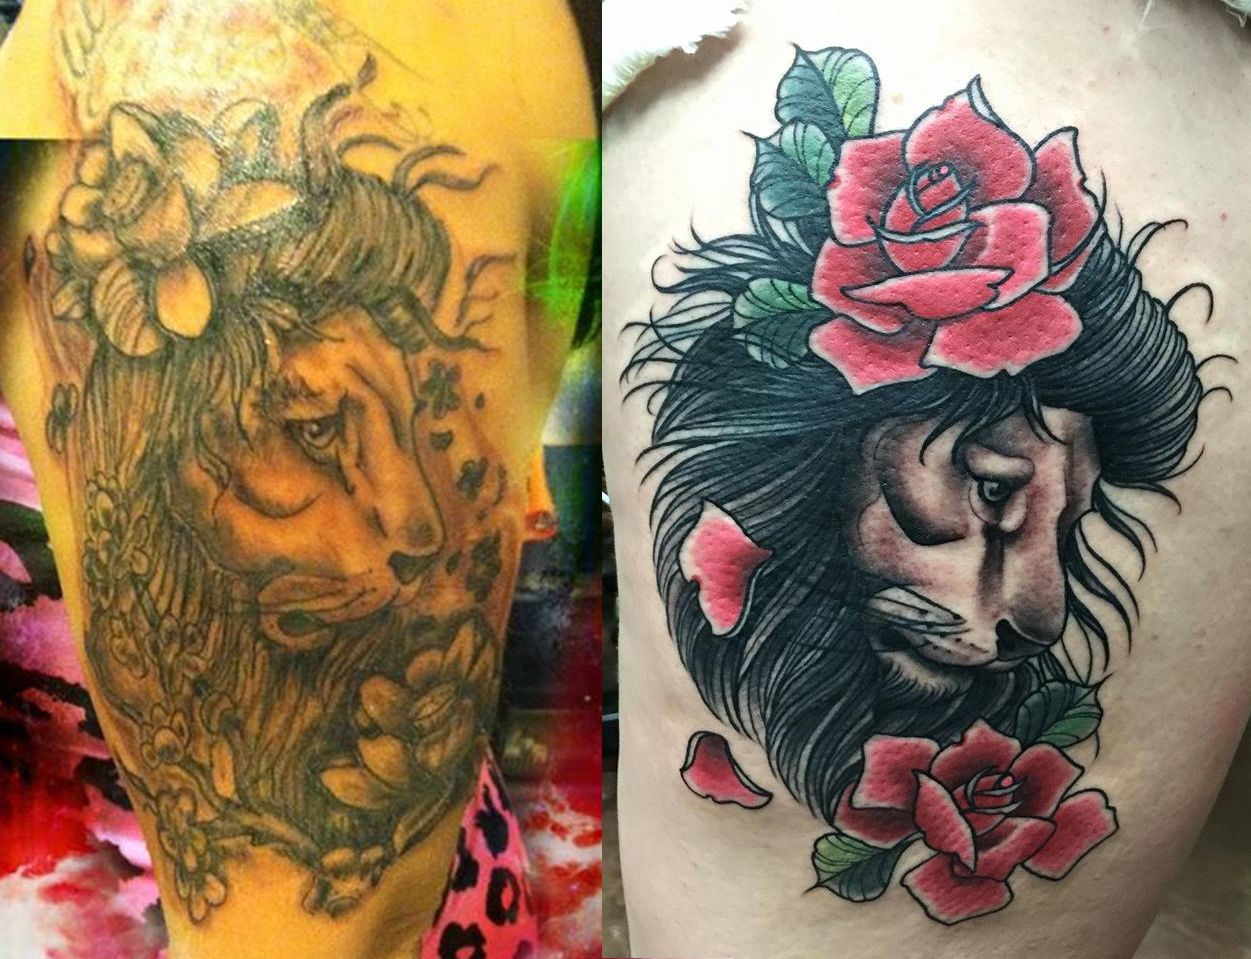 Cheap Tattoo Vs Expensive Tattoo